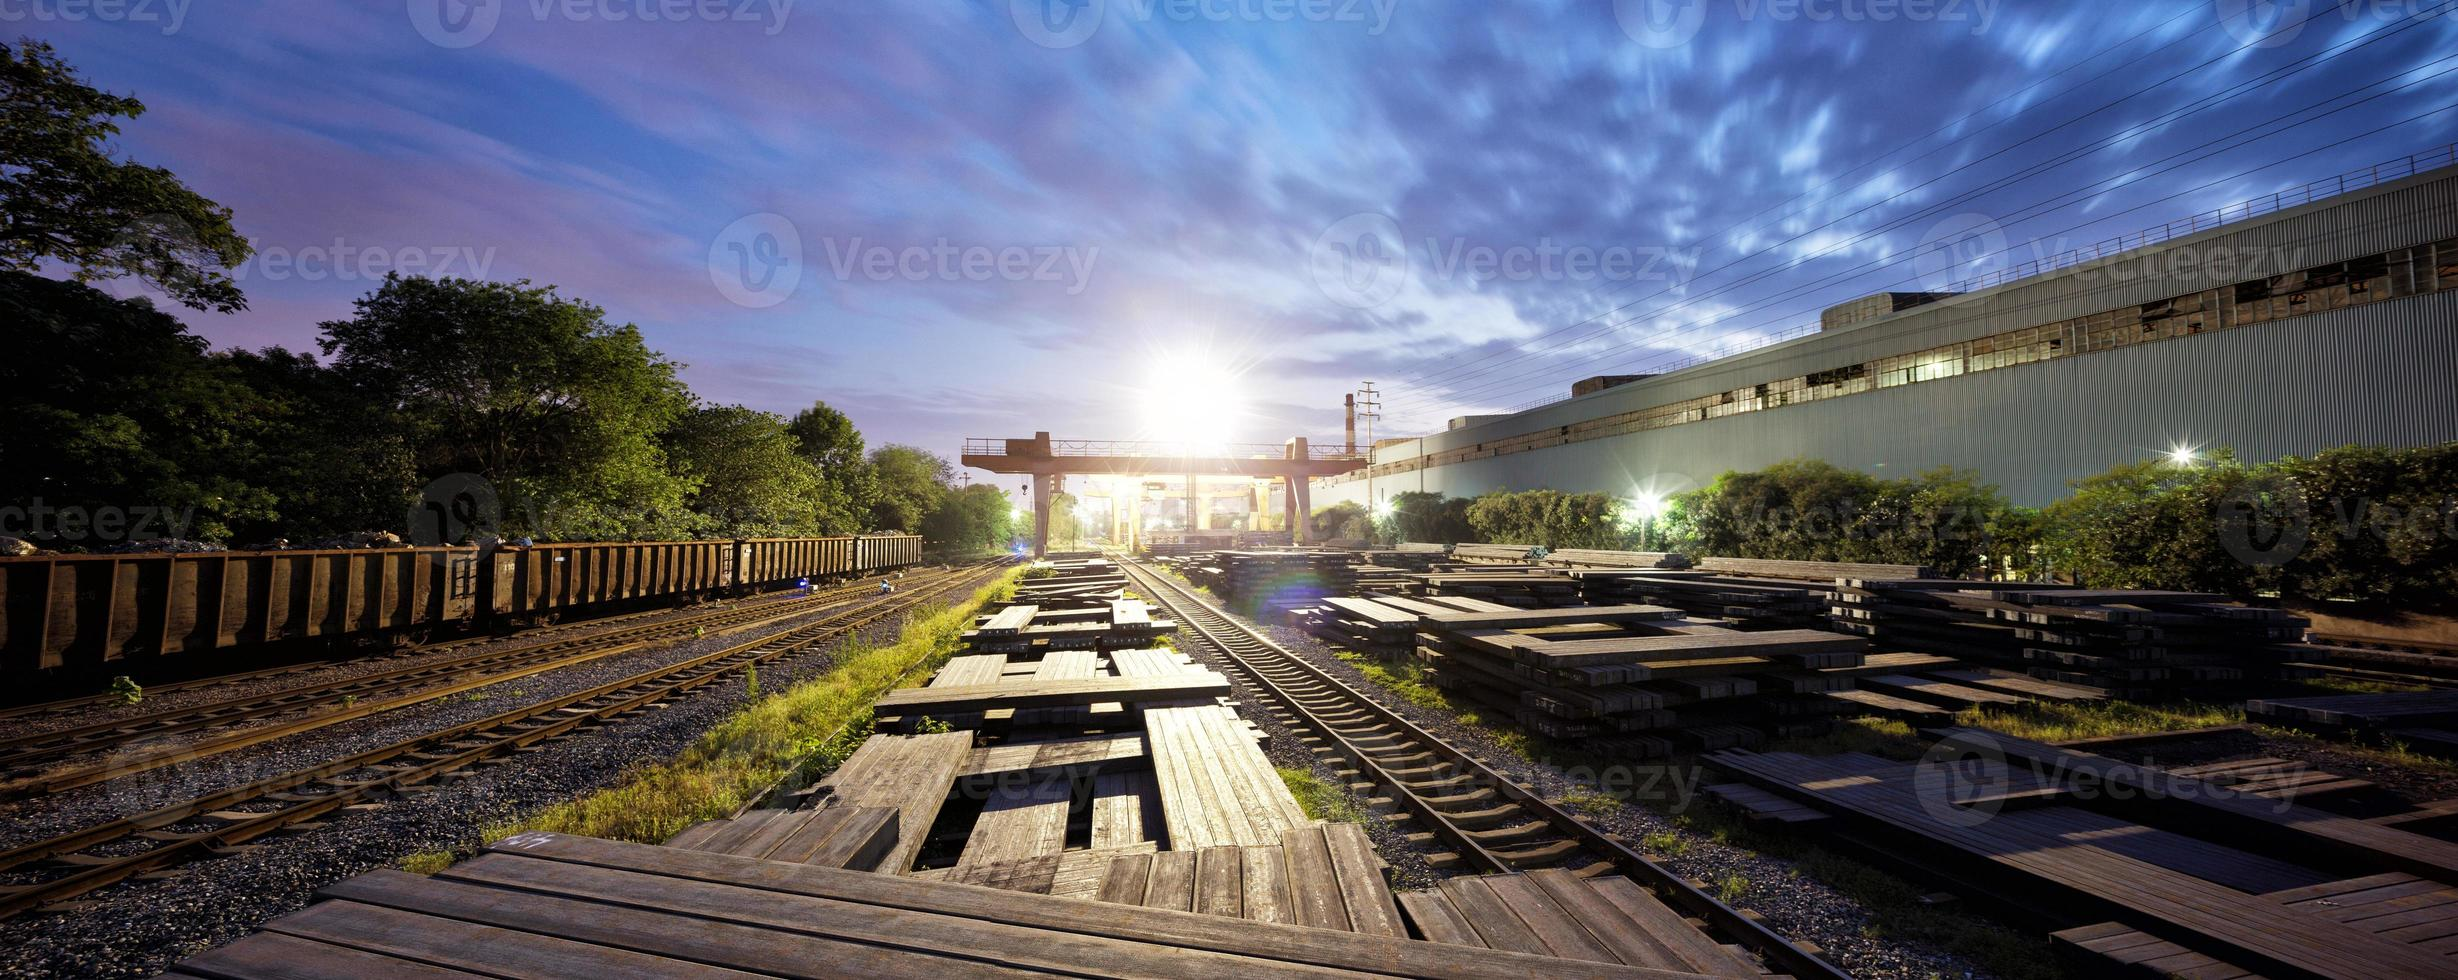 railroad in dusk photo